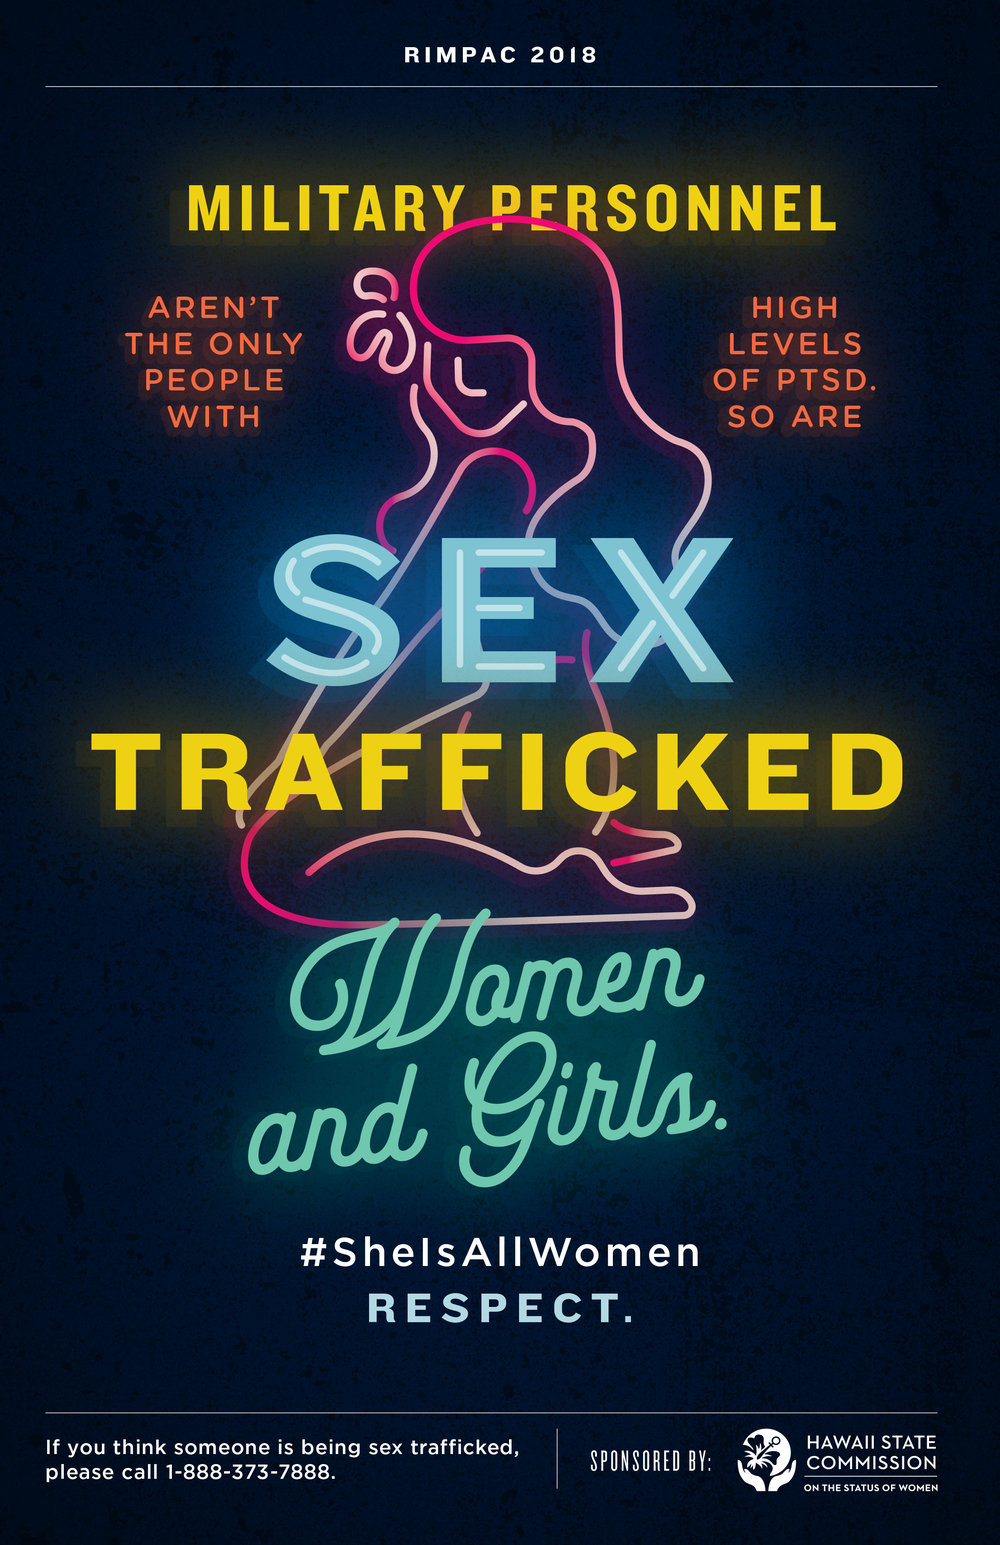 2018_CSW_AntiSexTrafficking_Poster-2-2.jpg